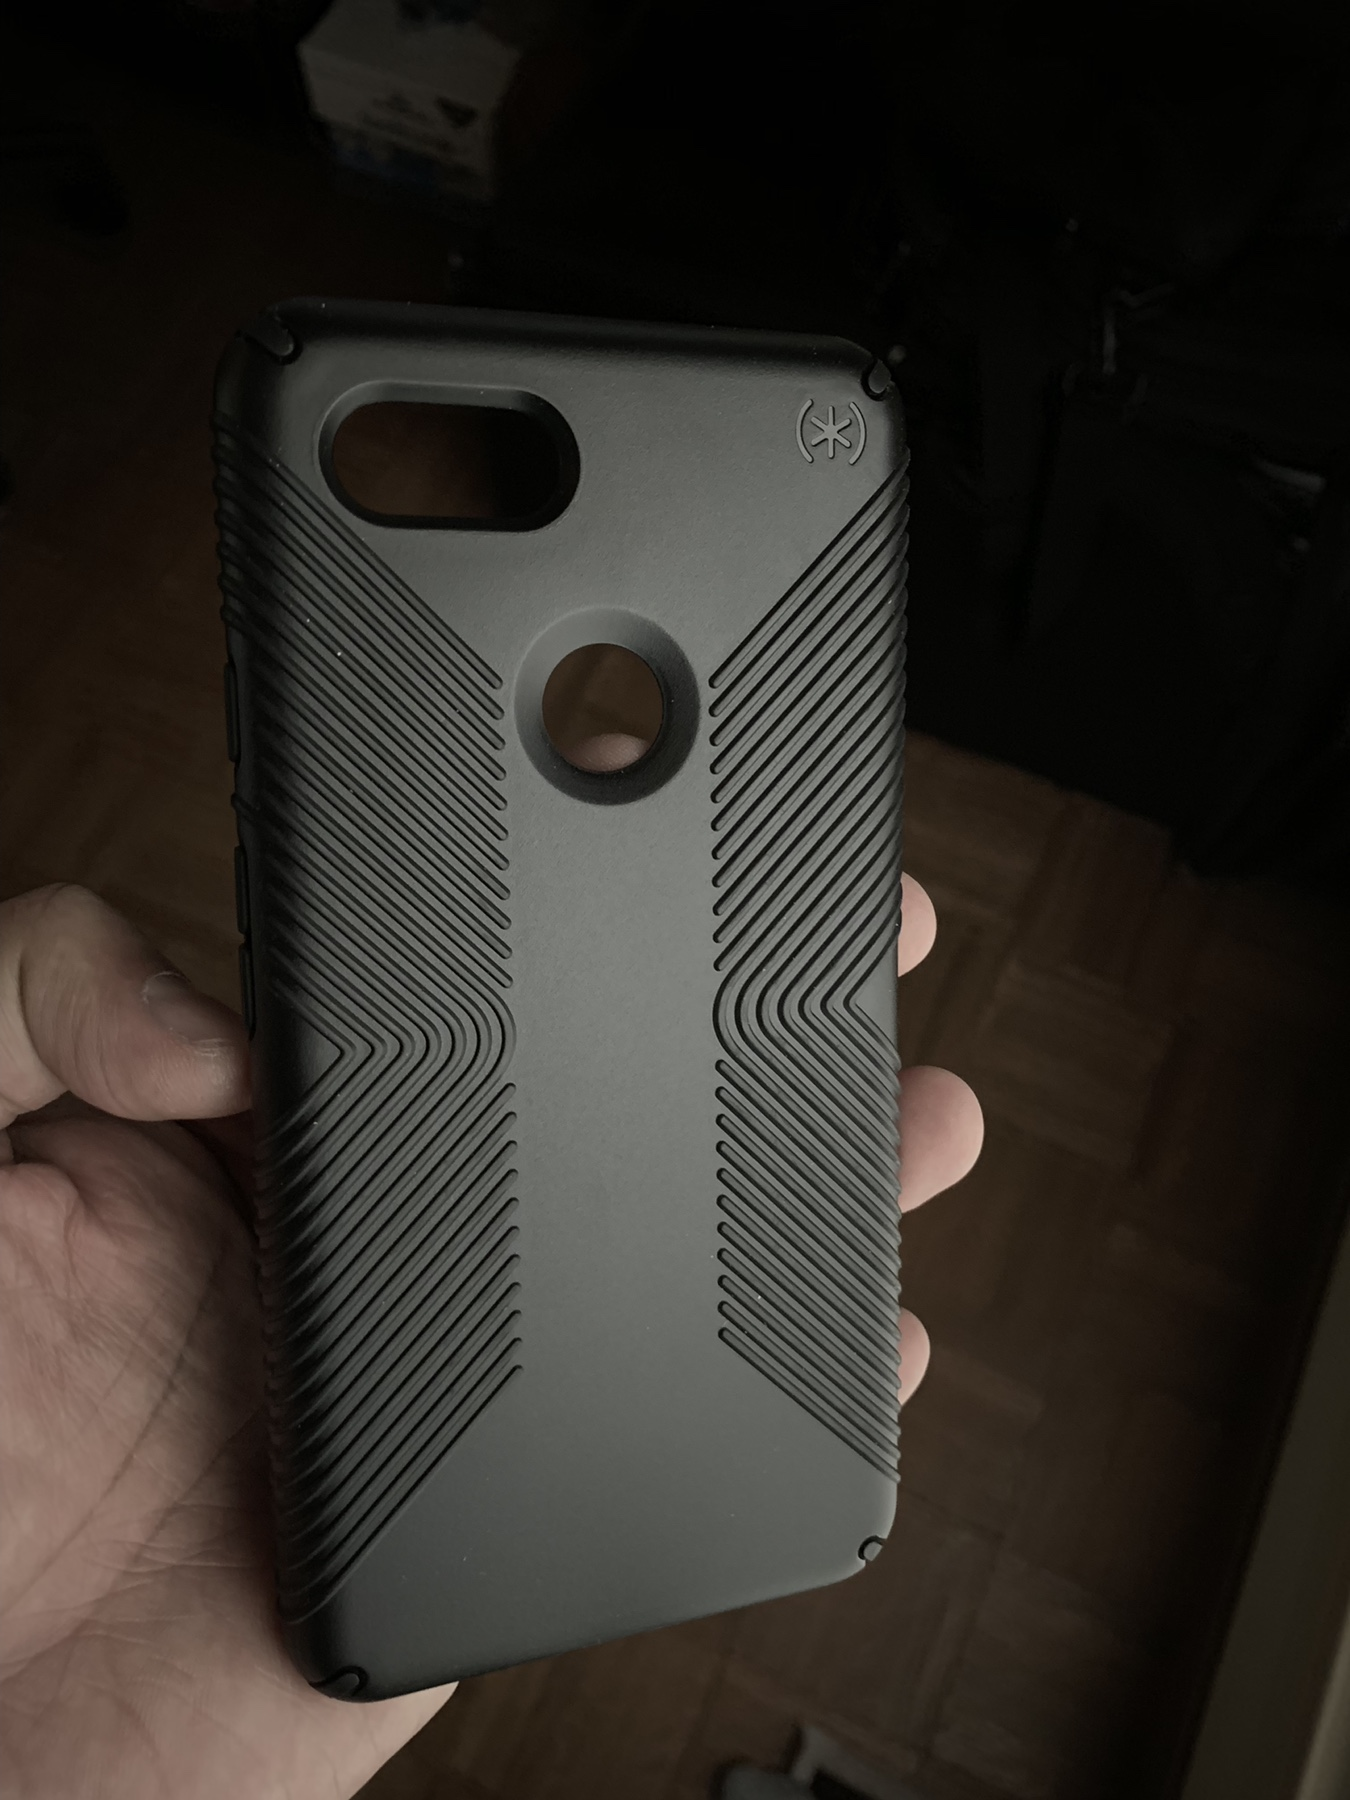 cheaper b753c e8b87 Cases for Pixel 3 - Android Forums at AndroidCentral.com